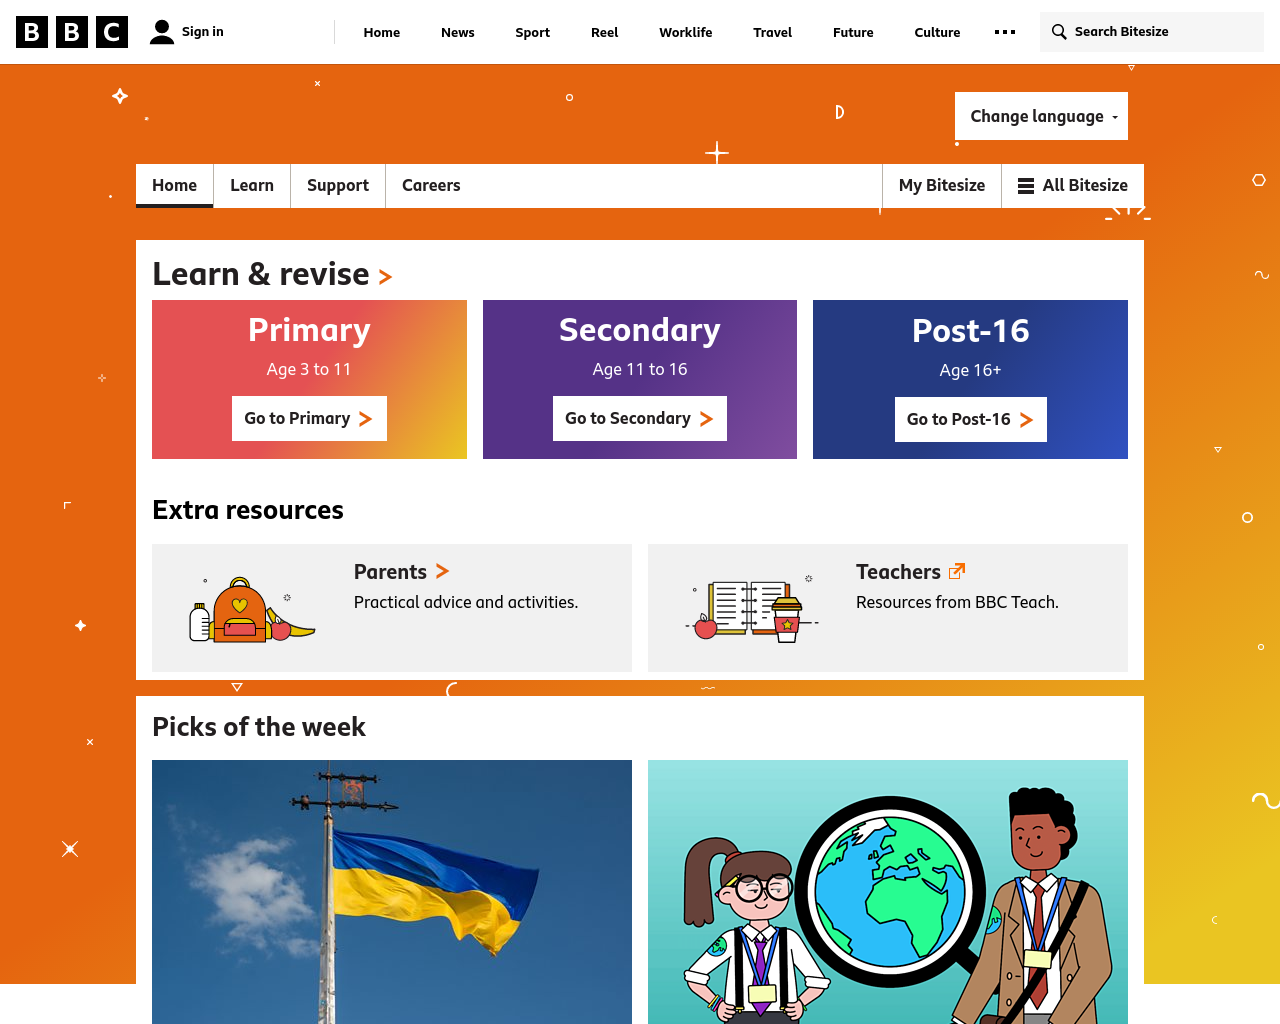 BBC Learning for Adults